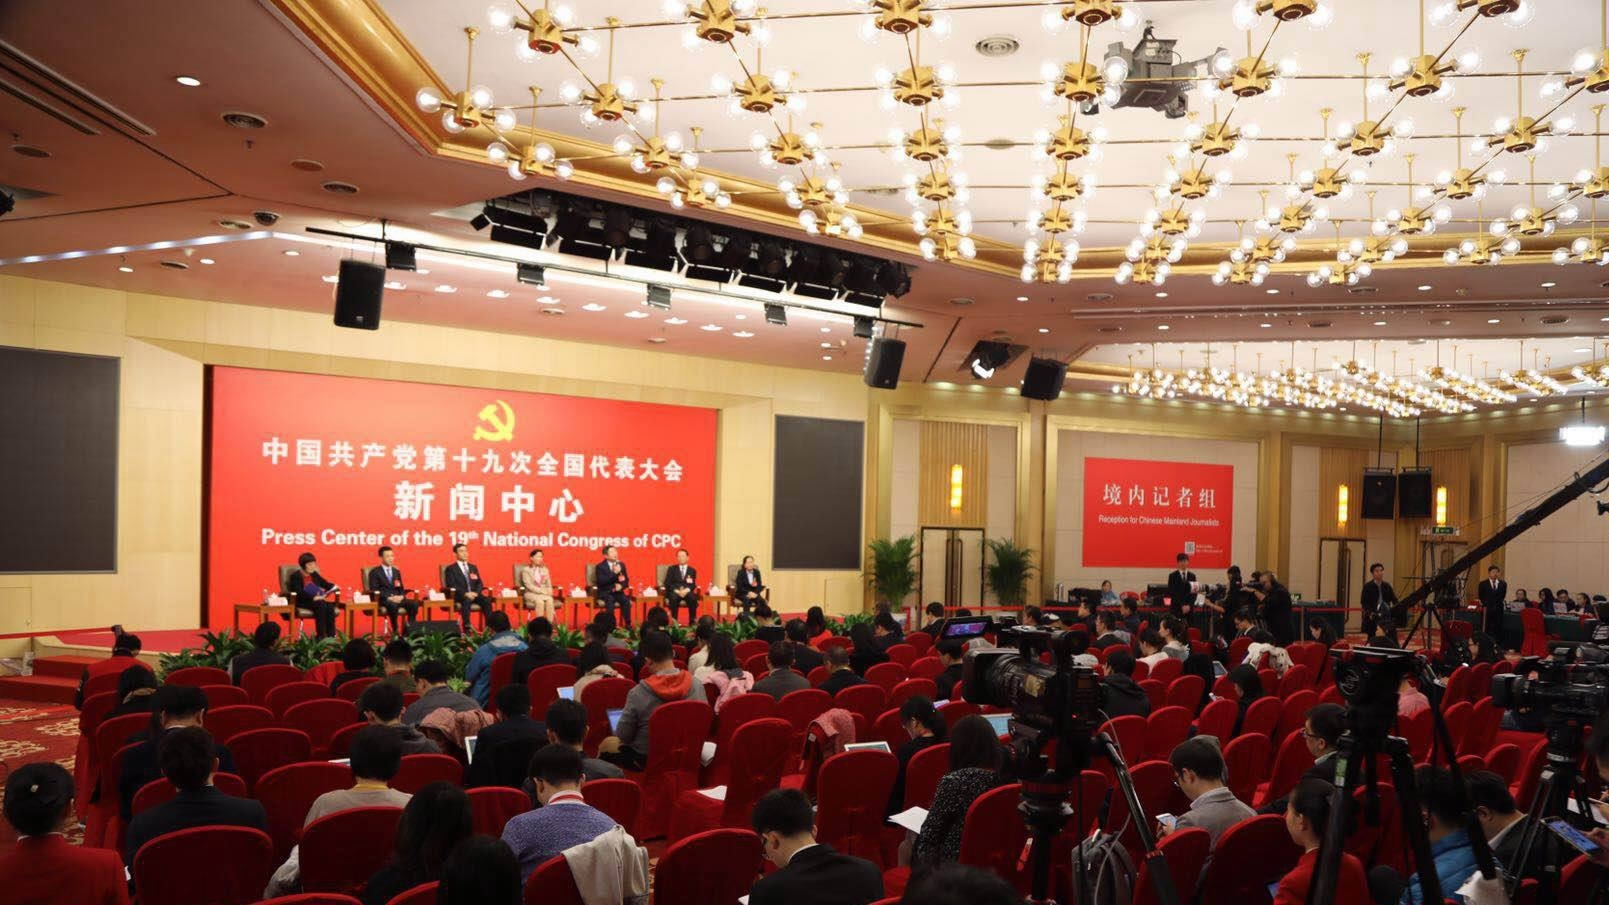 Progress and challenges coexist in China's educational reform